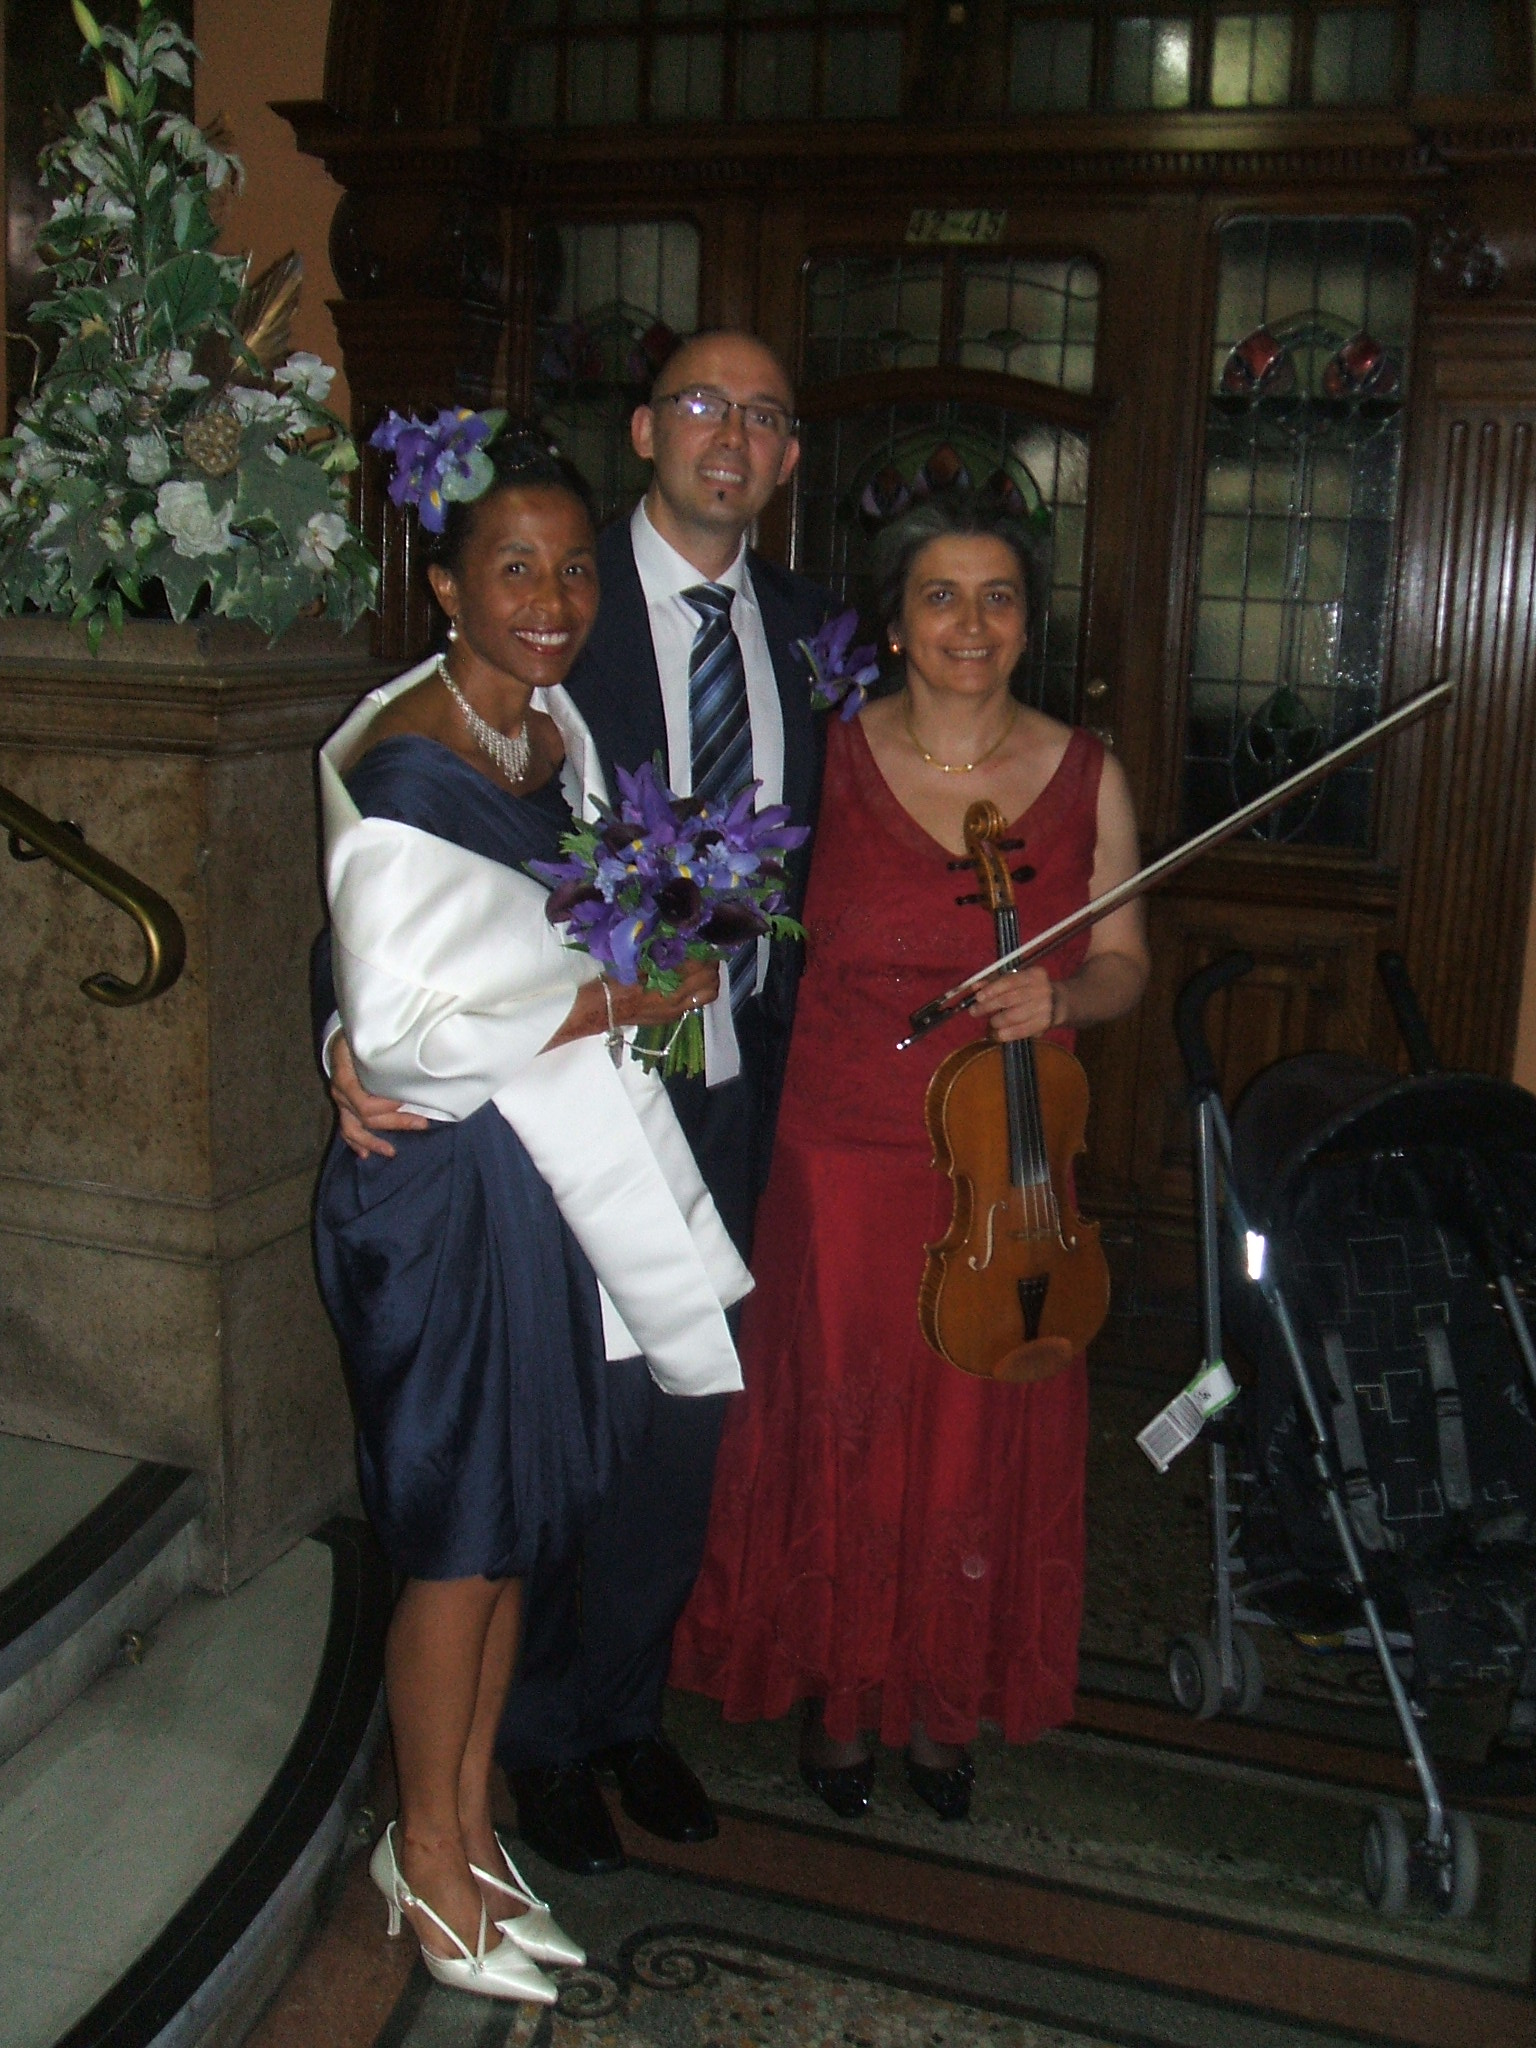 Civil wedding music at Fulham Town Hall, London. Book your professional wedding musician in Oxford. Violin, viola. Ceremony, reception, your favourite music played on the mellow viola.